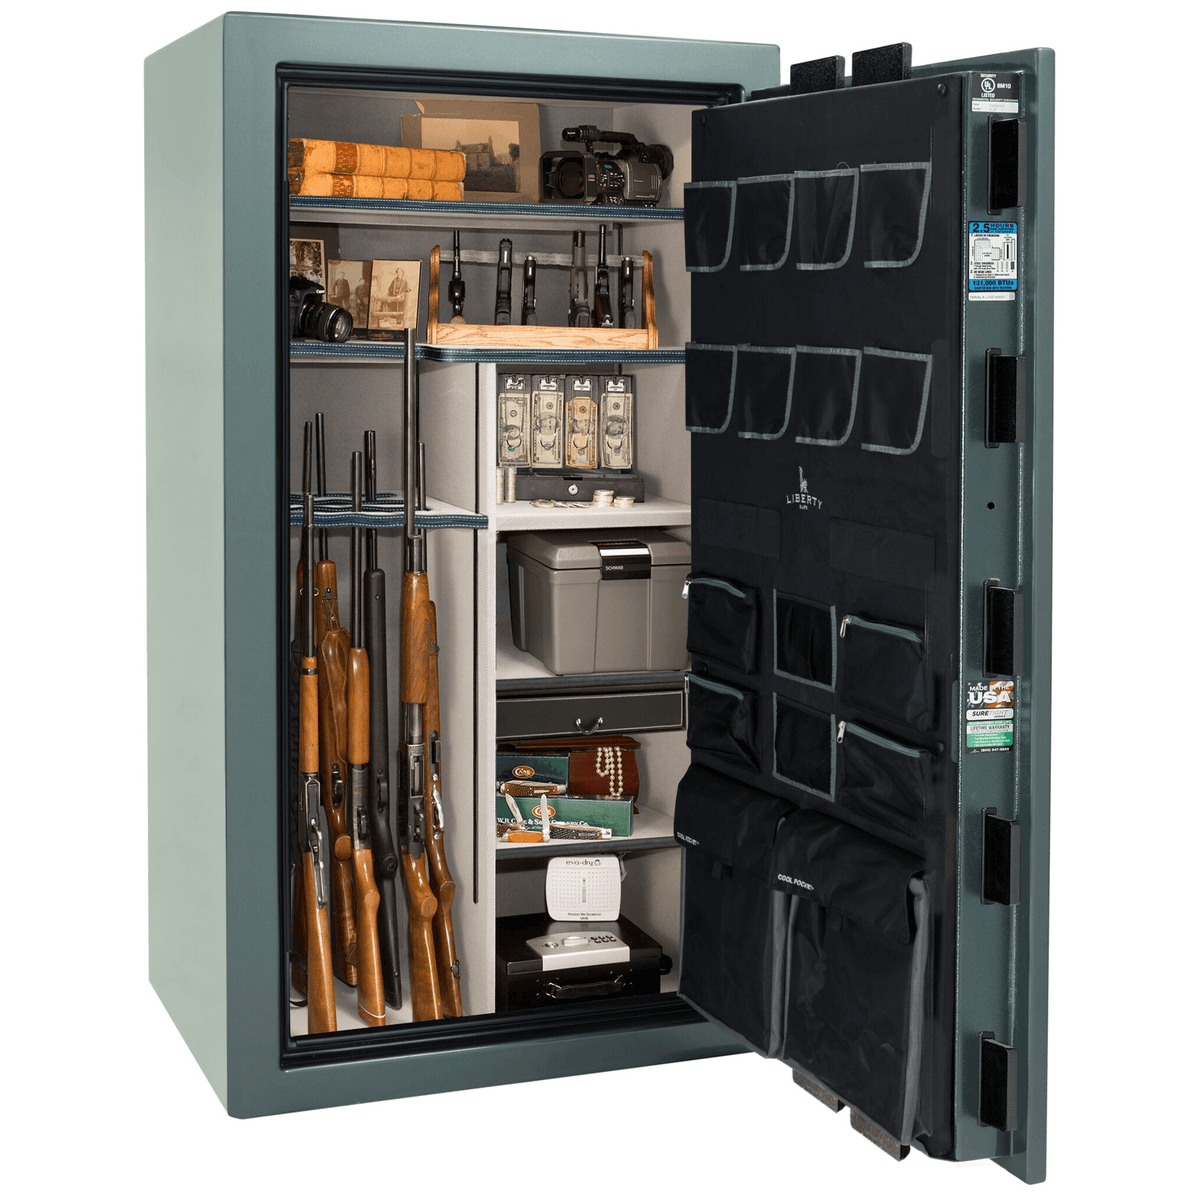 "Magnum | 40 | Level 8 Security | 150 Minute Fire Protection | Forest Mist Gloss | Black Electronic Lock | 65.5""(H) x 36""(W) x 32""(D)"